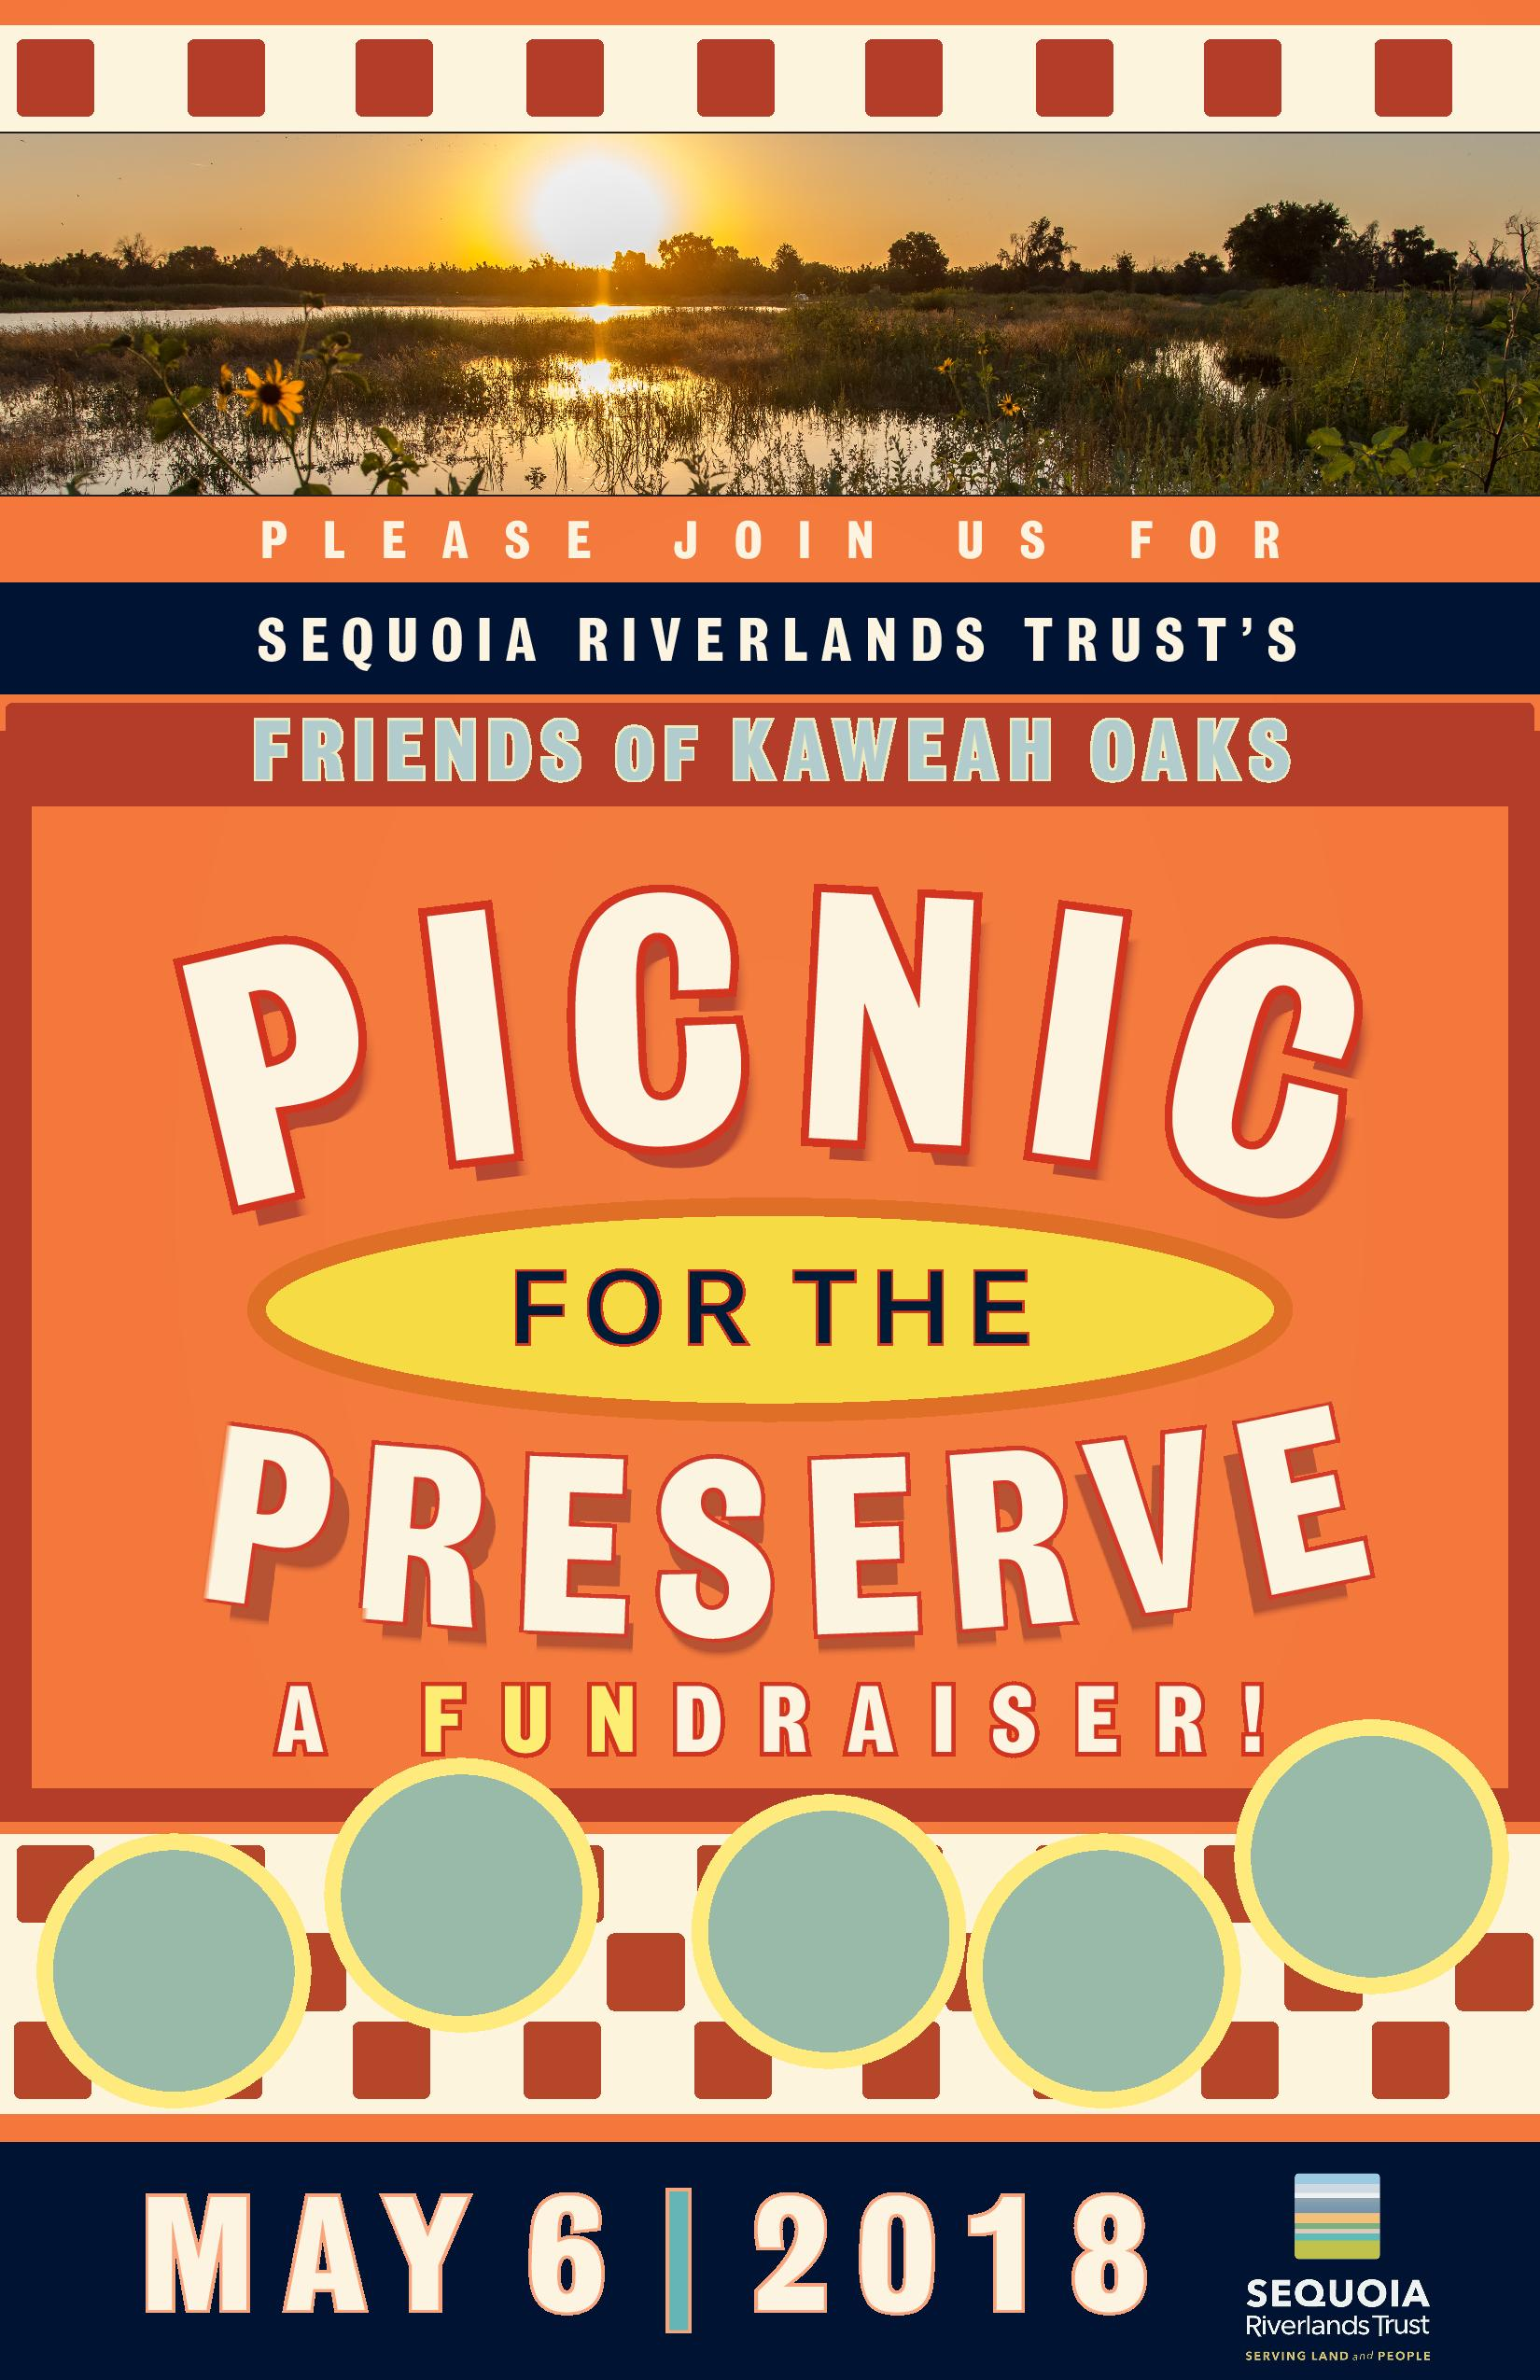 Picnic for the Preserve